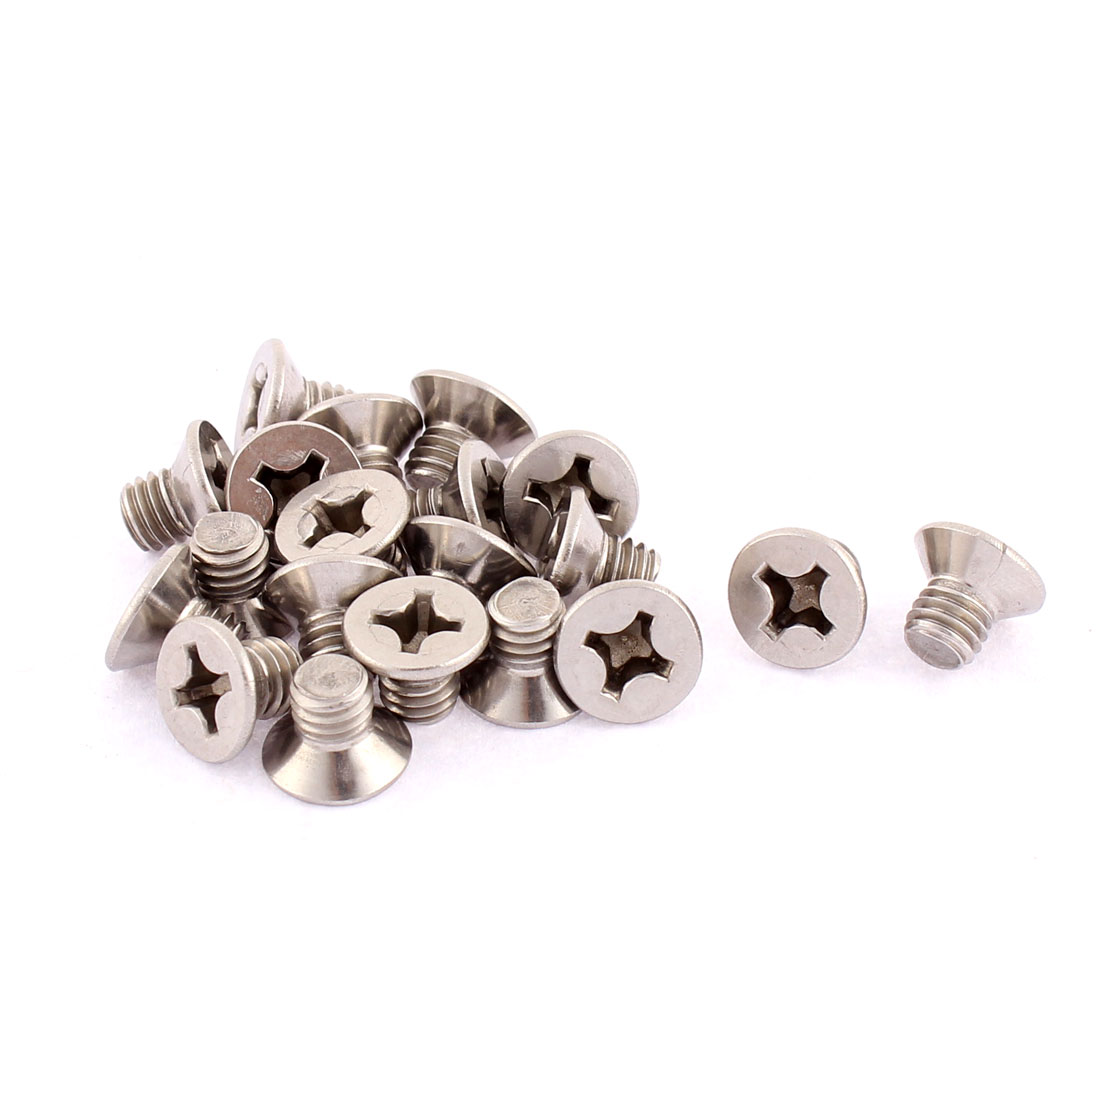 M6 x 8mm Phillips Head Stainless Steel Countersunk Bolts Machine Screws 20pcs